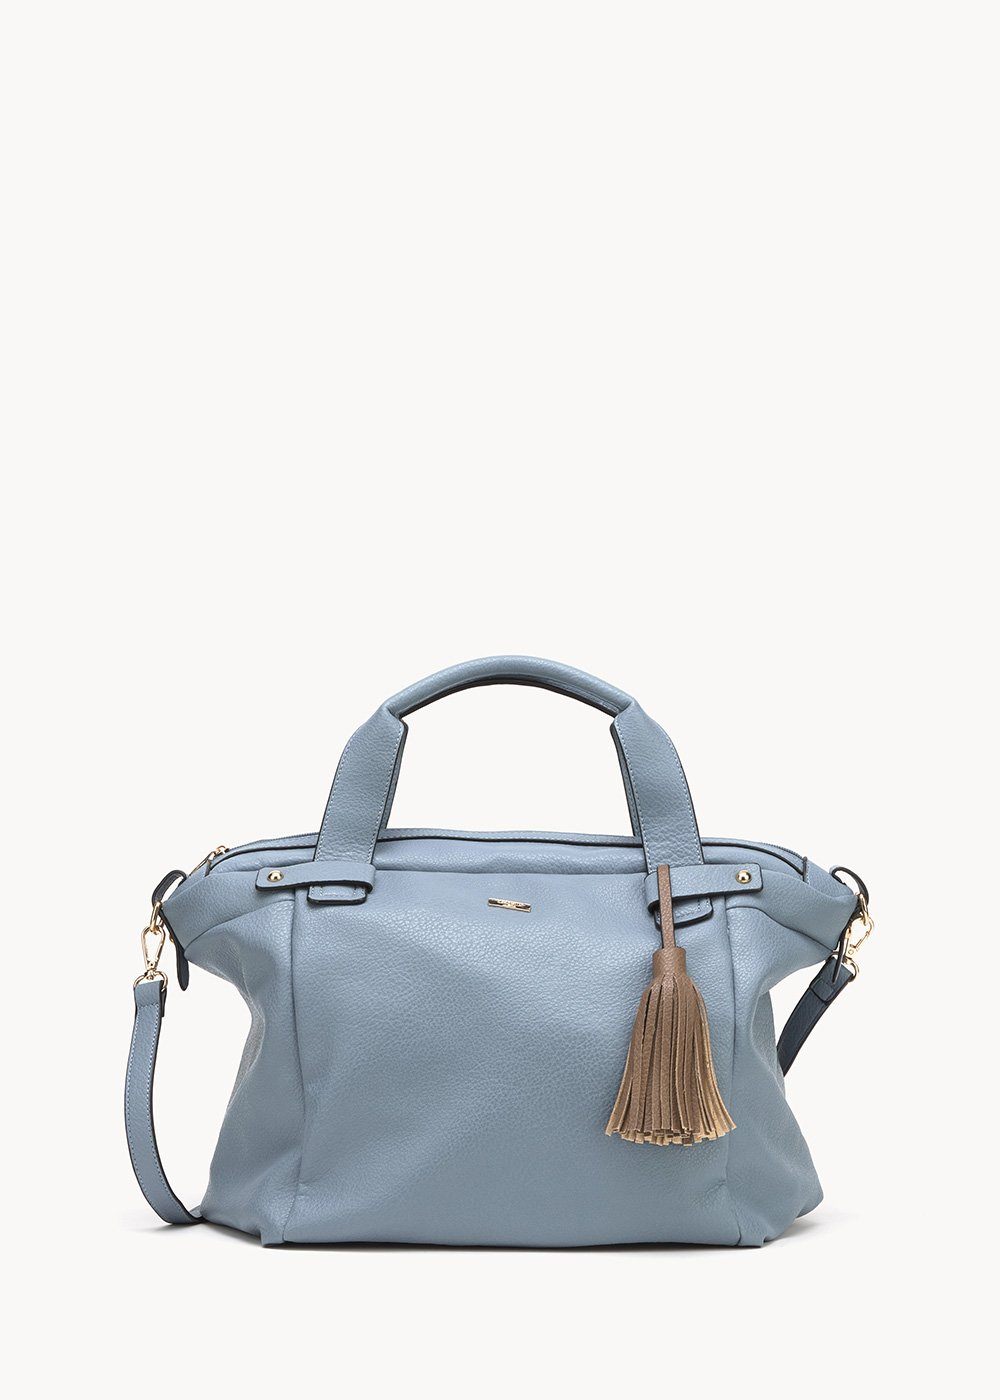 Shopping bag Bady rugiada - Rugiada - Donna